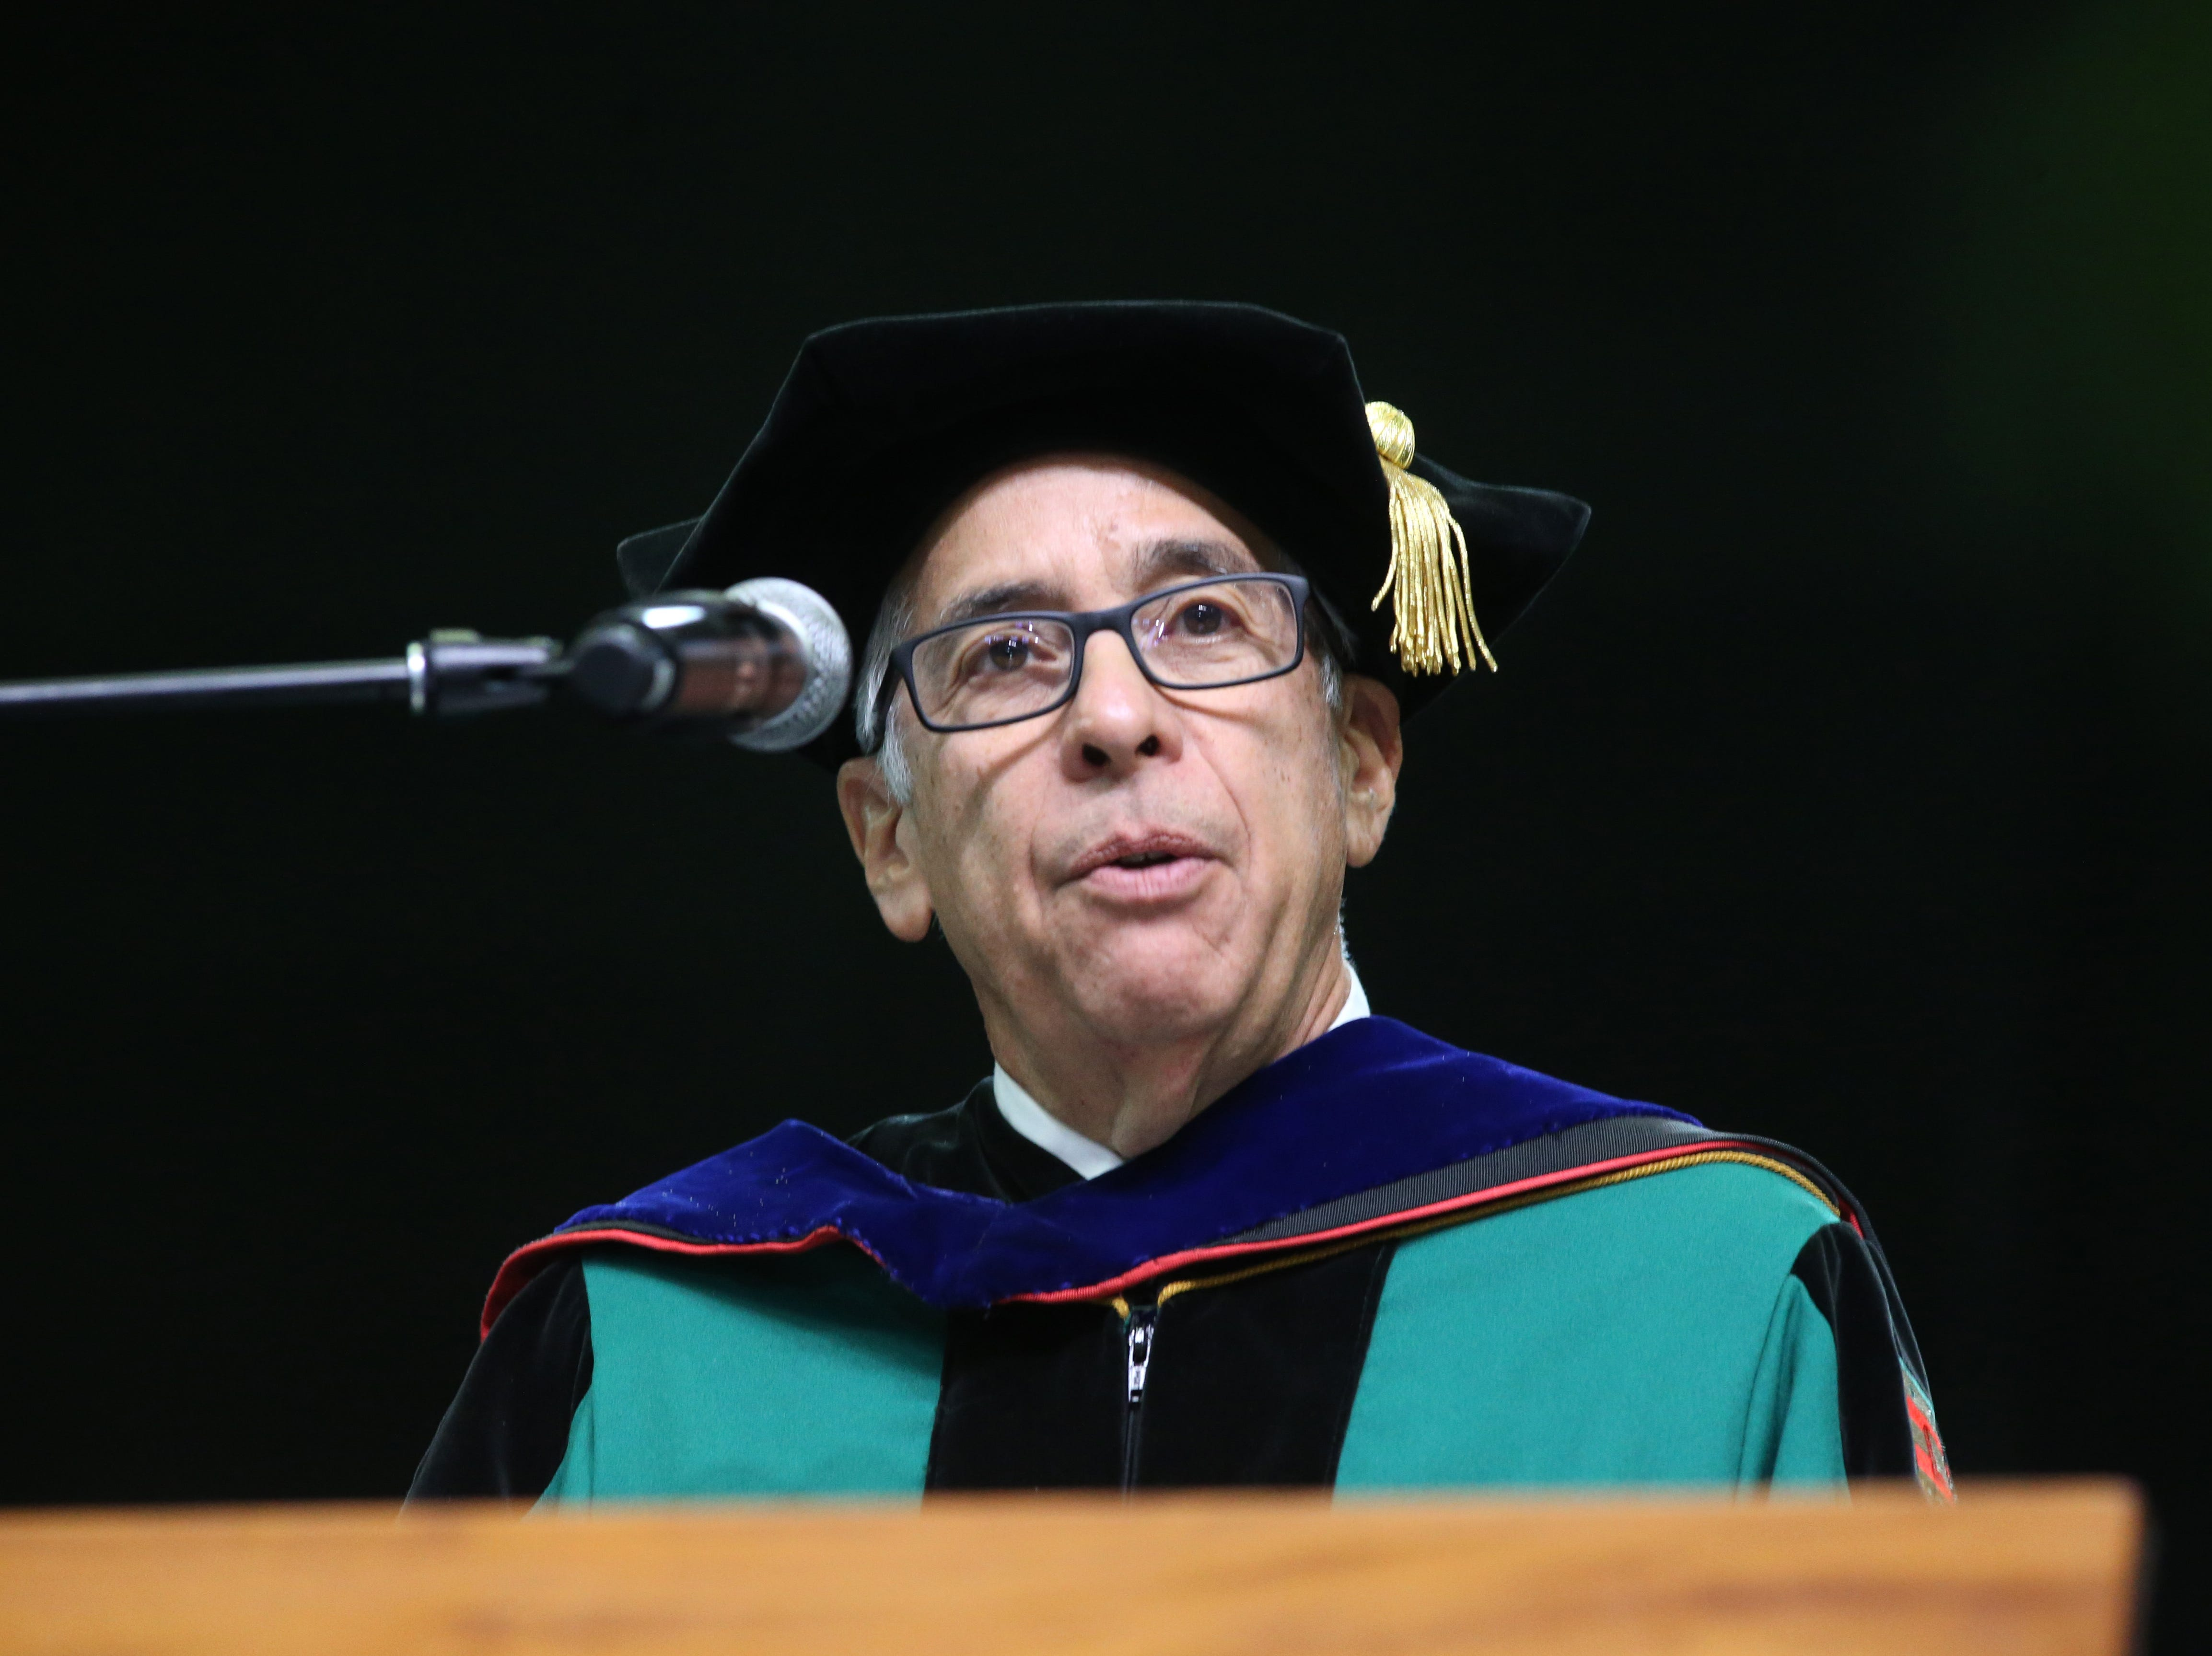 Edward Macias, Provost Emeritus Washington University in St. Lous,  speaks at the 2018 Presidents' Inauguration for Larry Robinson, held in the Lawson Center on Friday, Nov. 9, 2018.